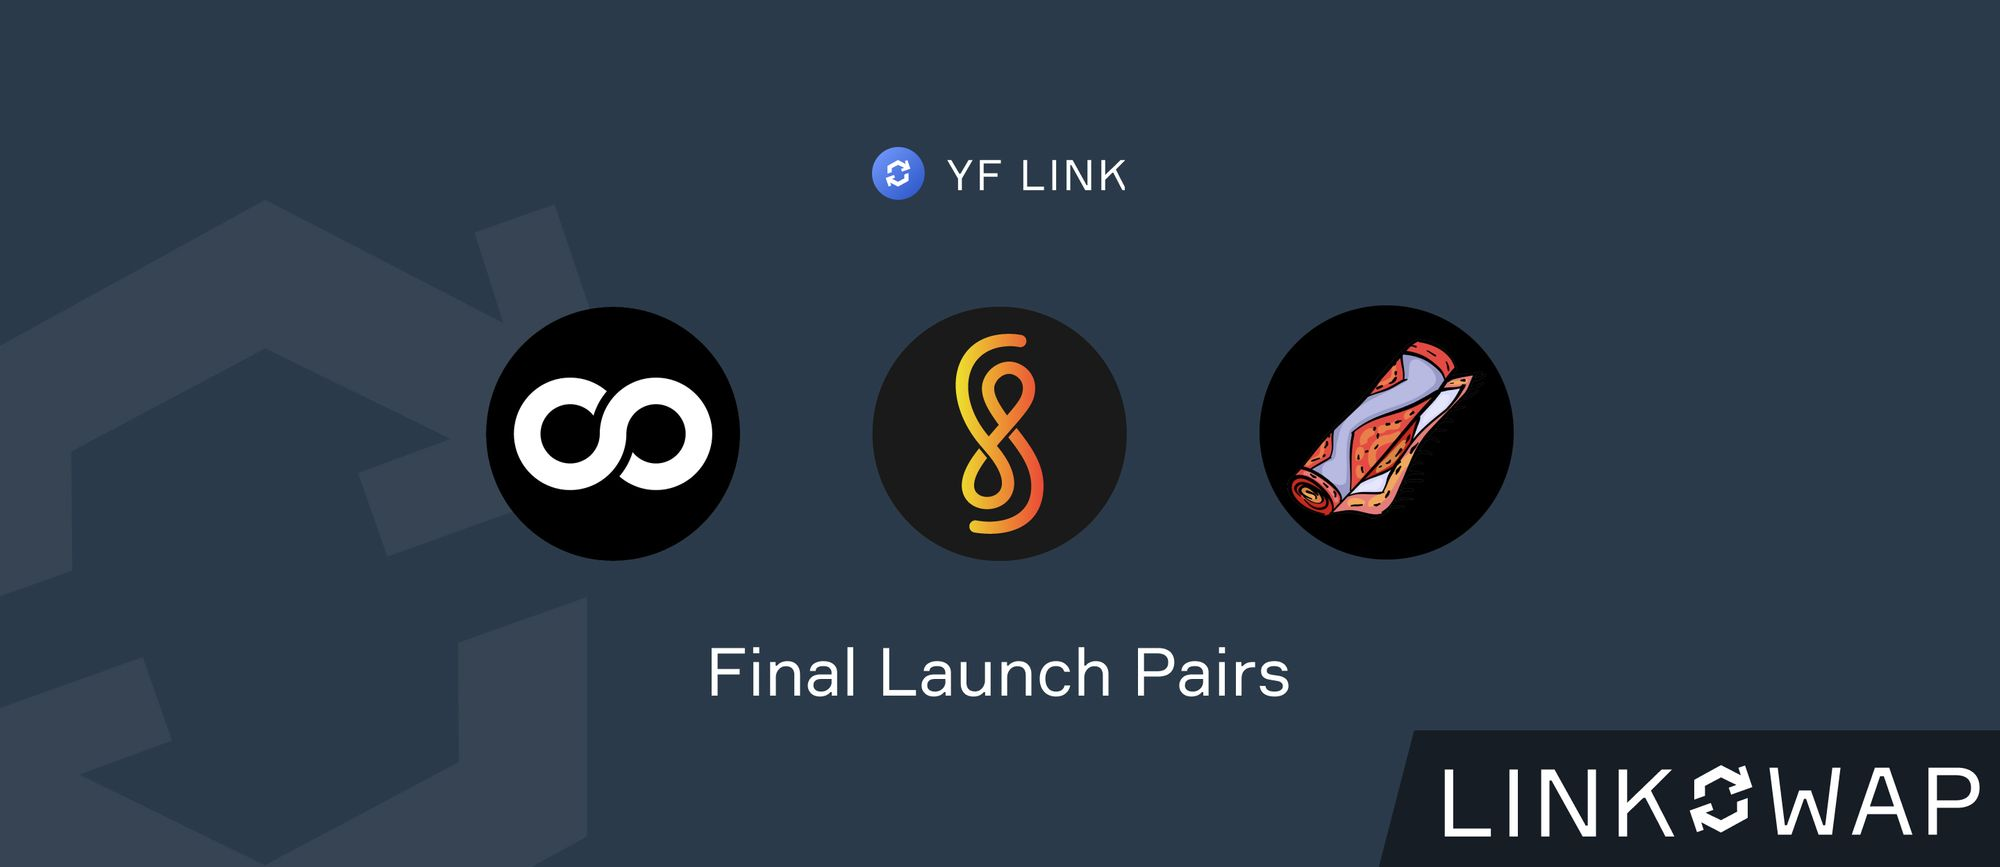 LINKSWAP Launch Pairs Announcement